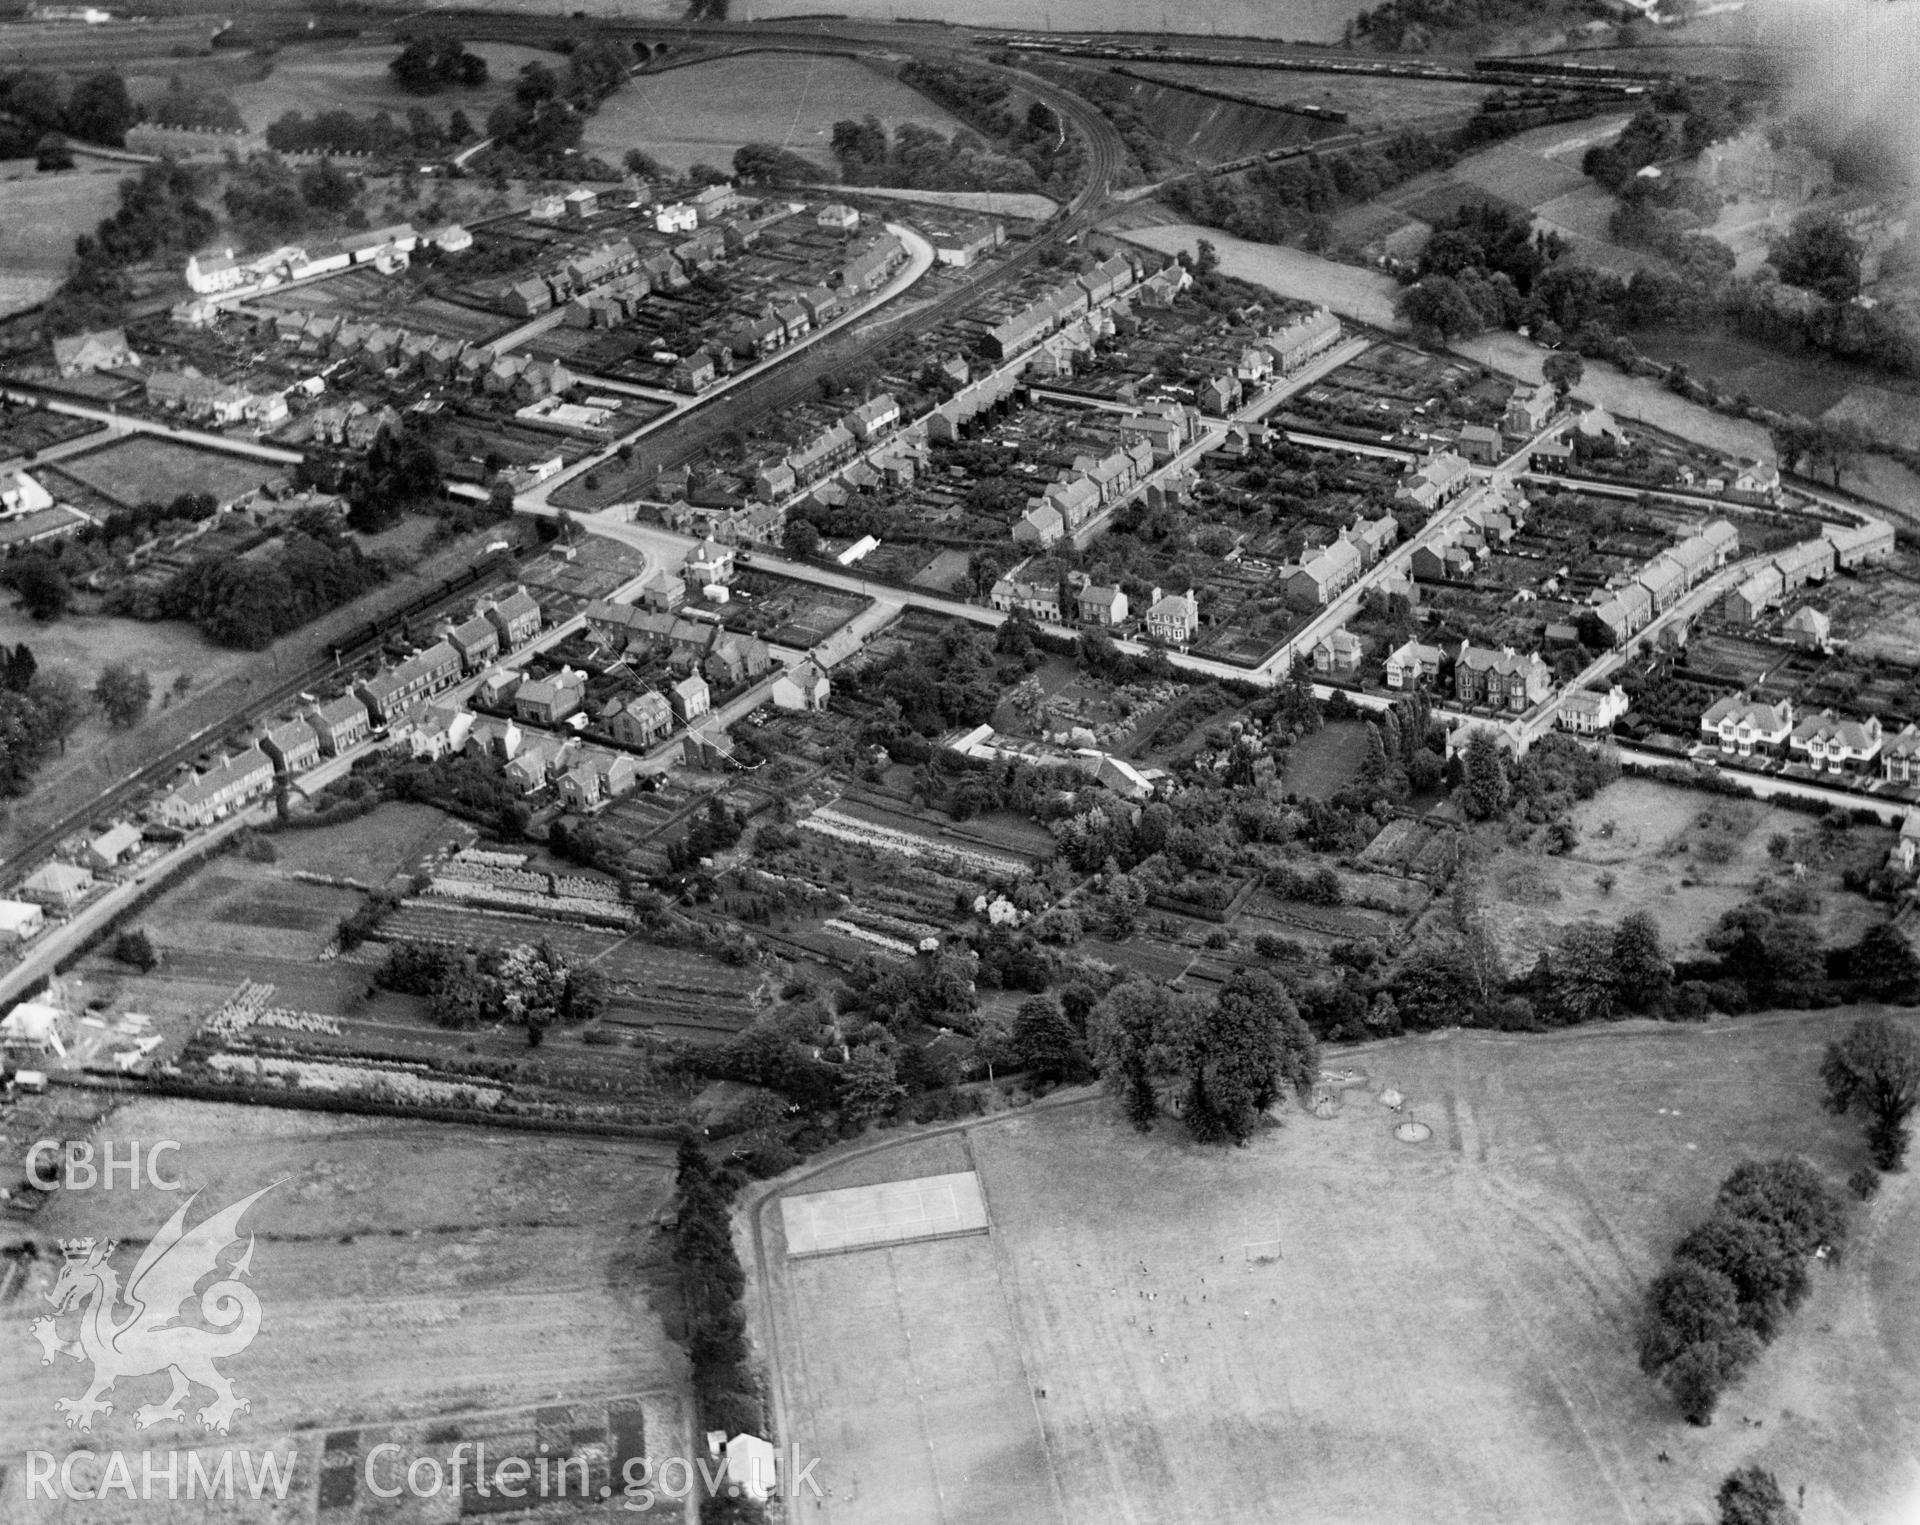 General view of Abergavenny showing the Merthyr, Tredegar & Abergavenny railway line. Oblique aerial photograph, 5?x4? BW glass plate.